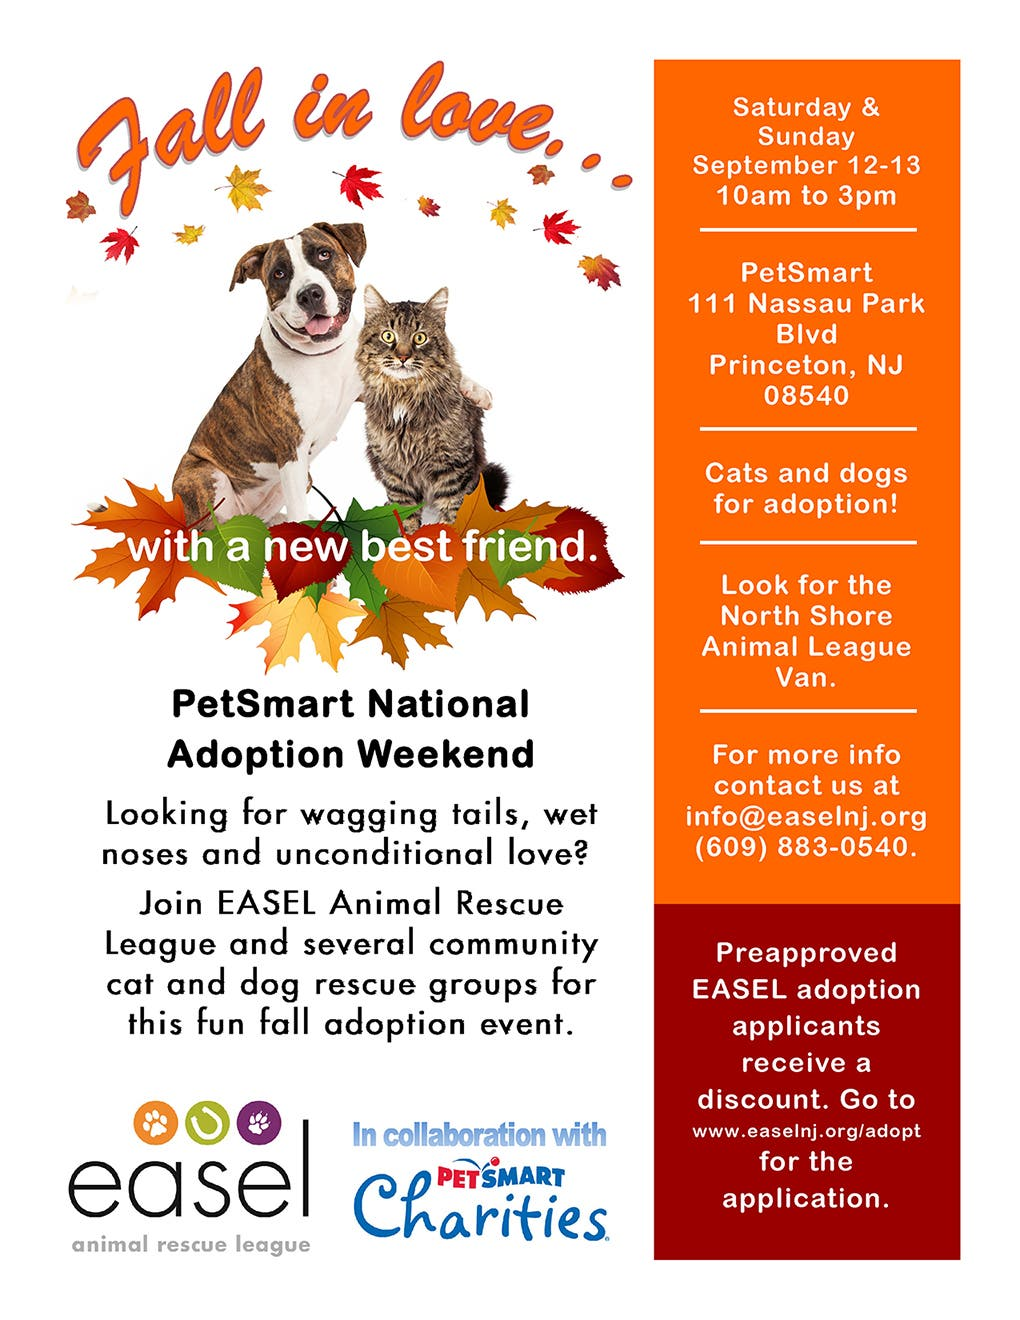 Huge Adoption Event at Princeton PetSmart Sept 12-13